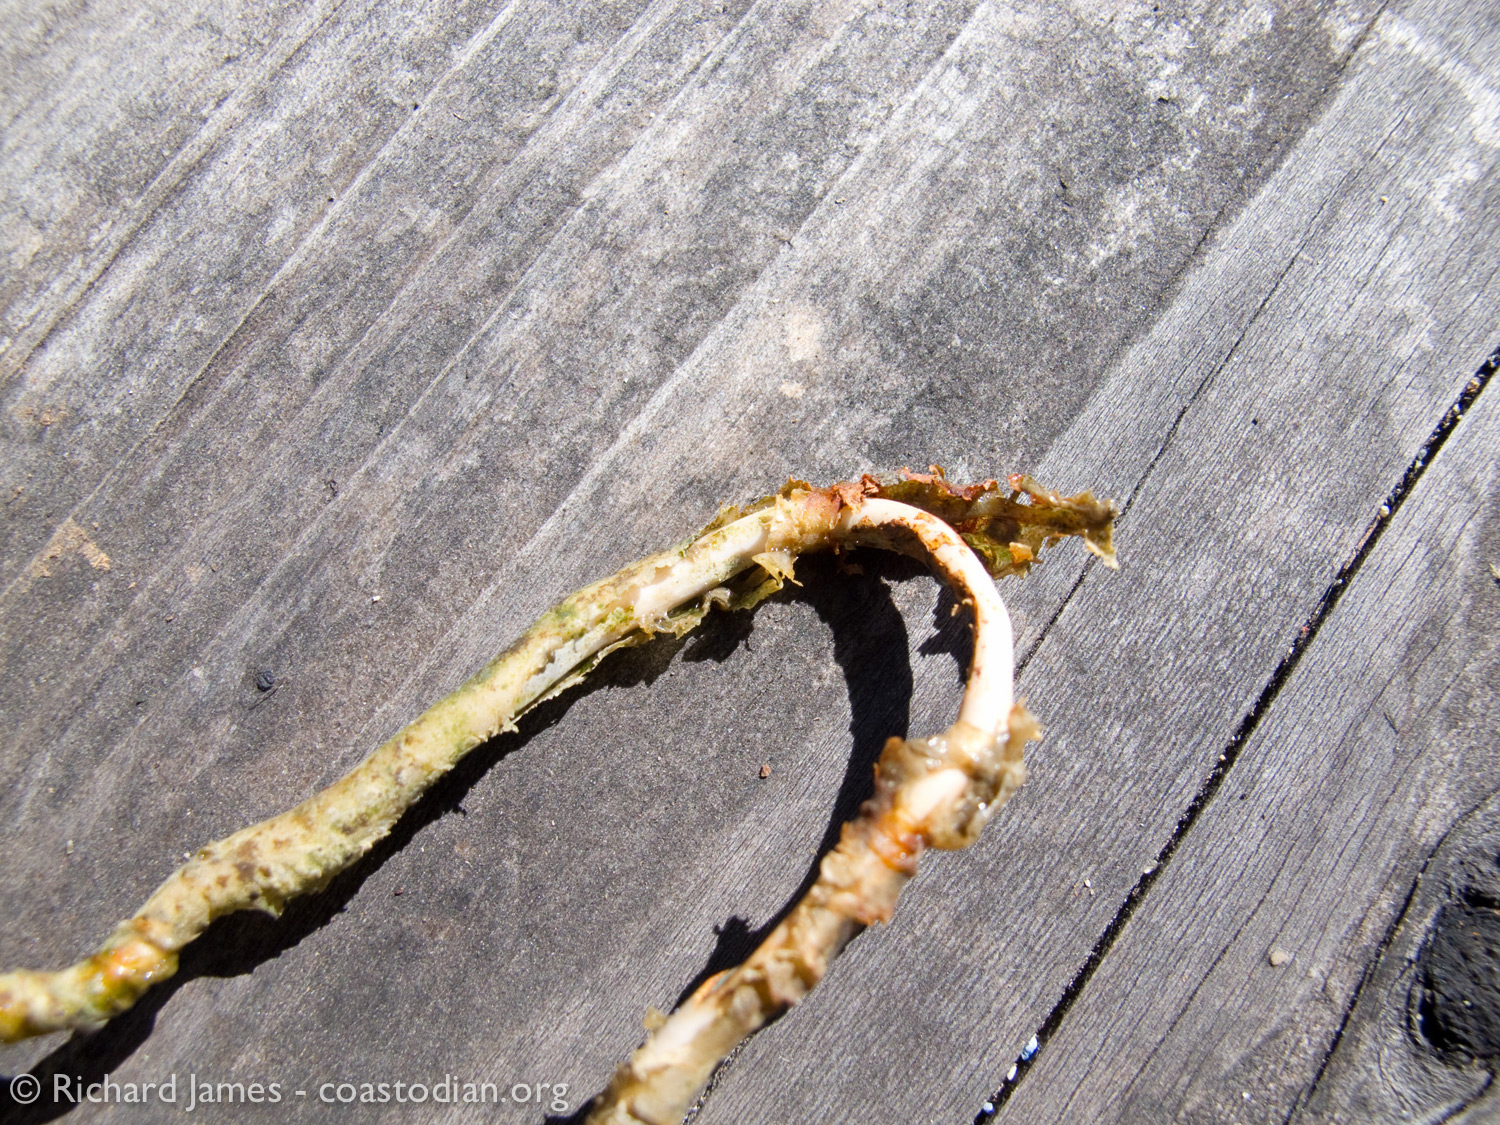 deteriorating plastic-coated copper wire recovered from Point Reyes Oyster Company lease